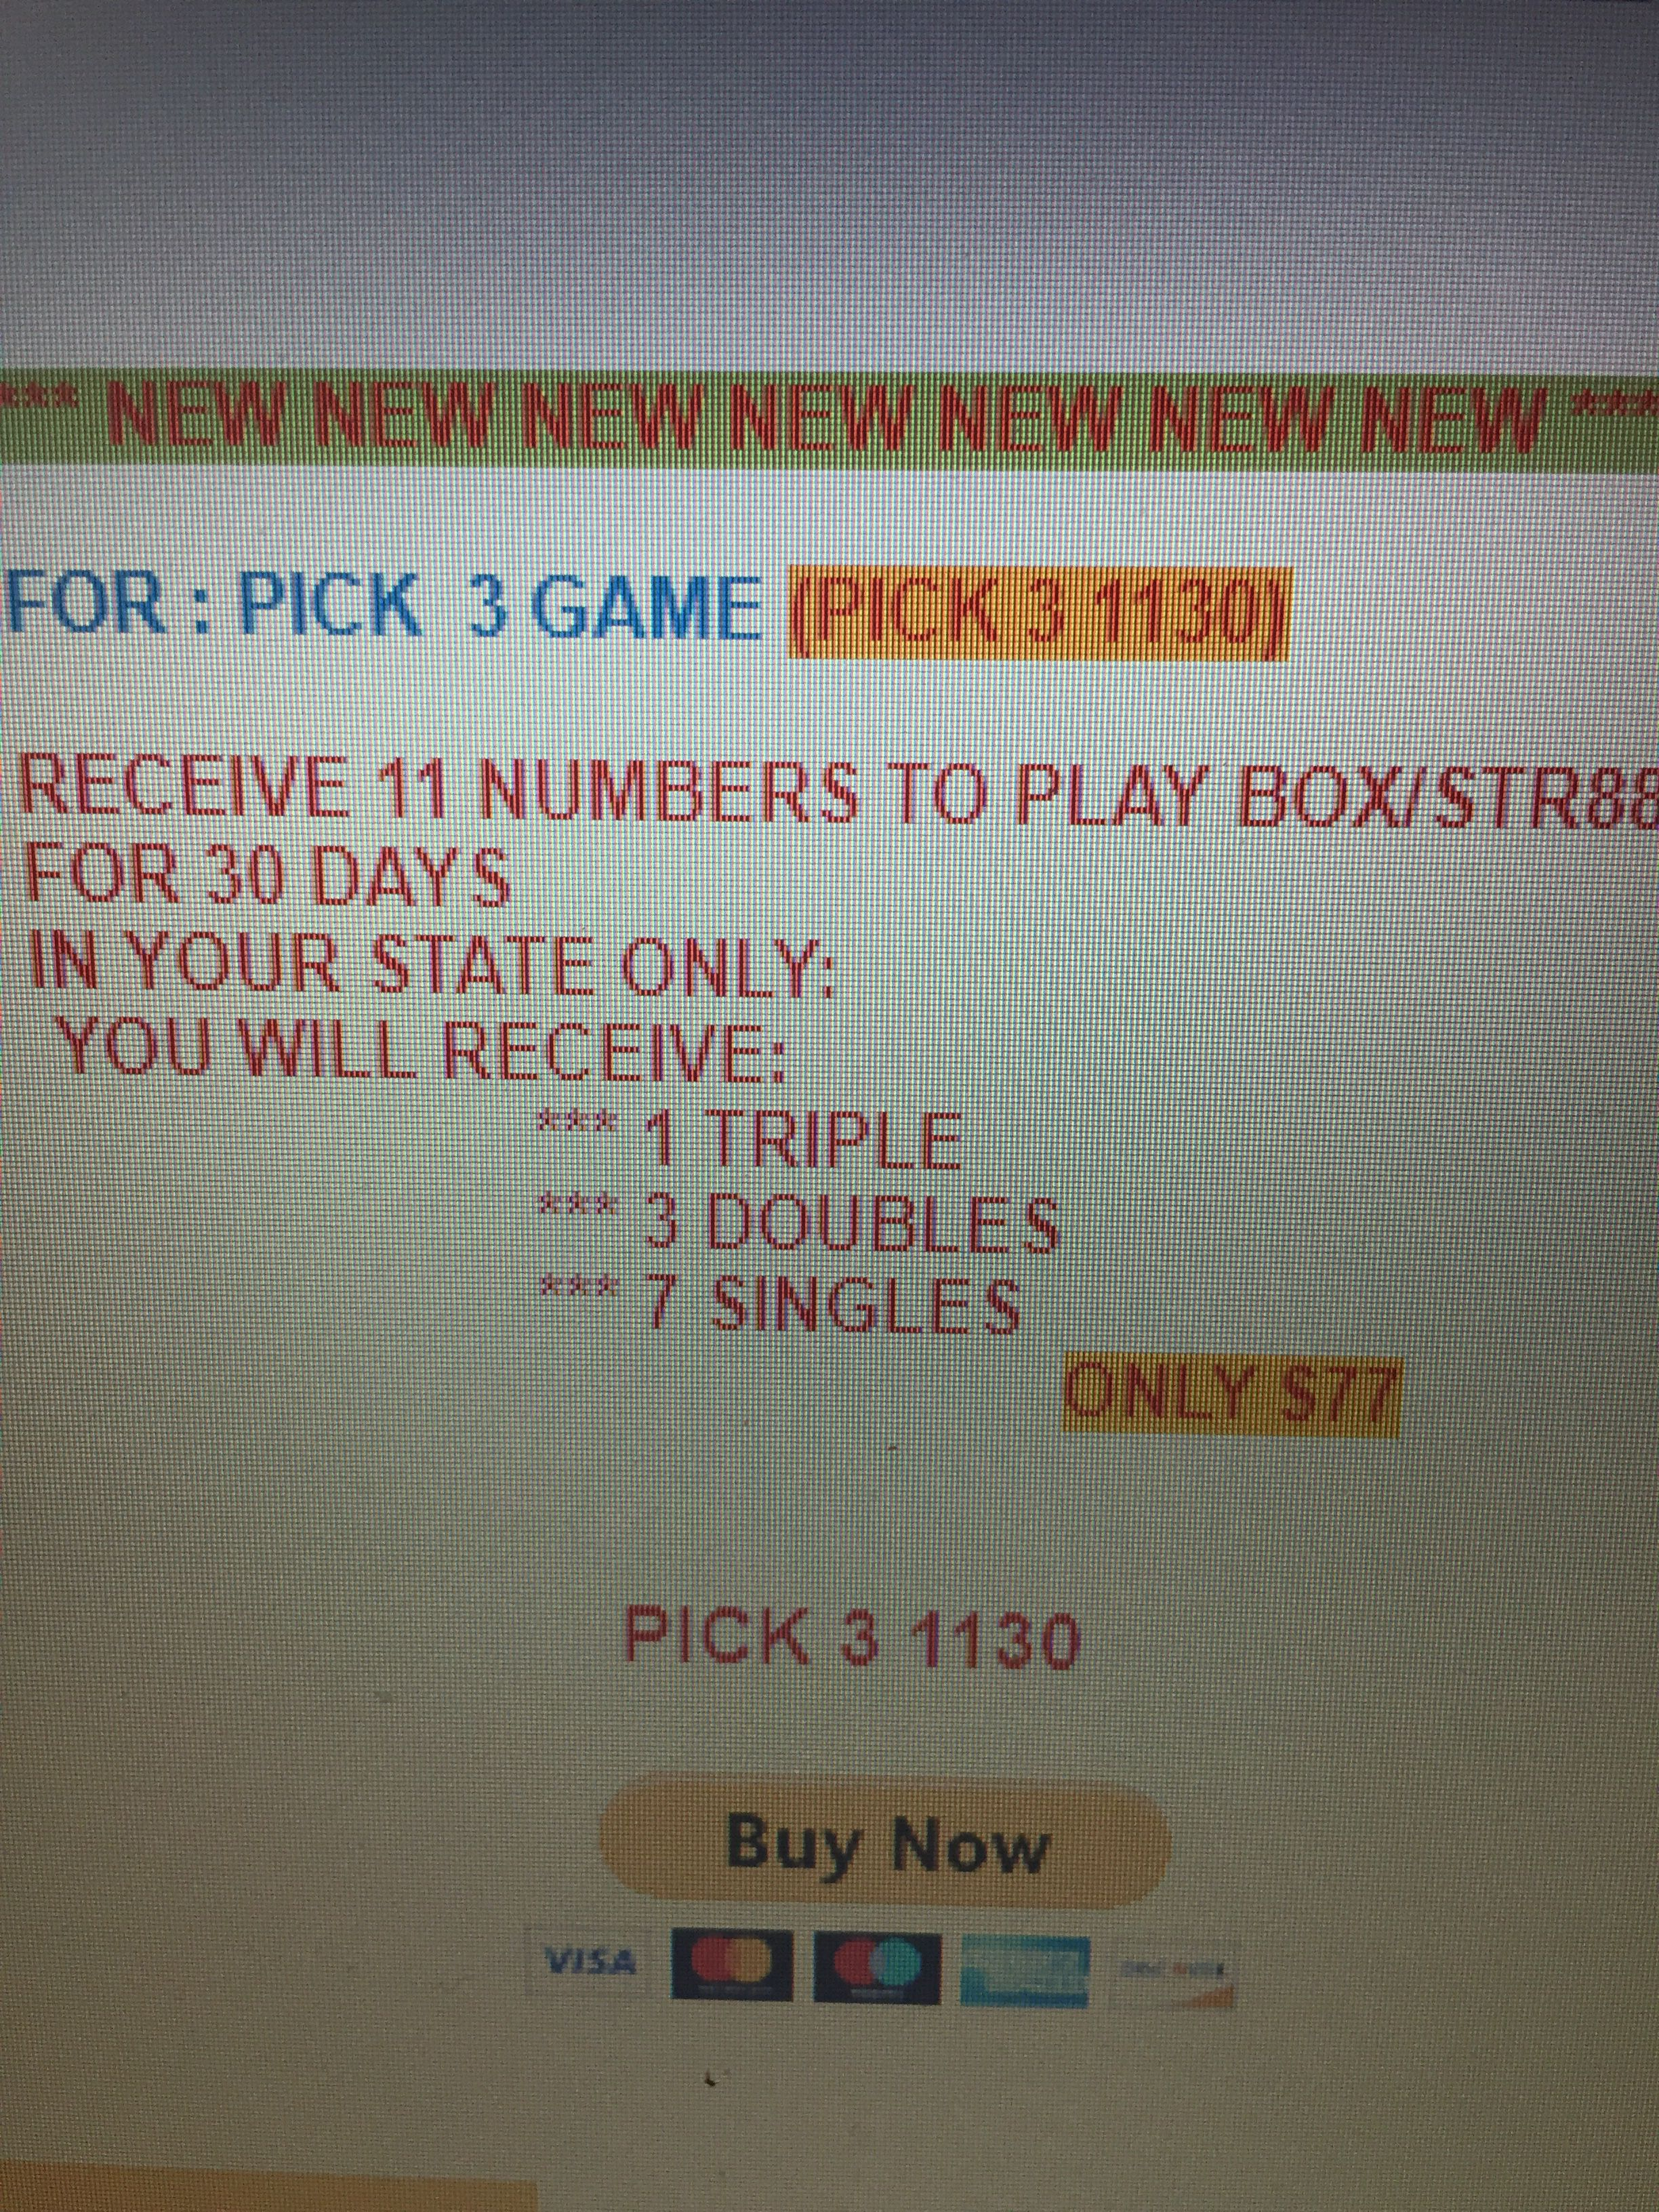 Receive 11 Winning Numbers To Play Box Str888 For 30 Days